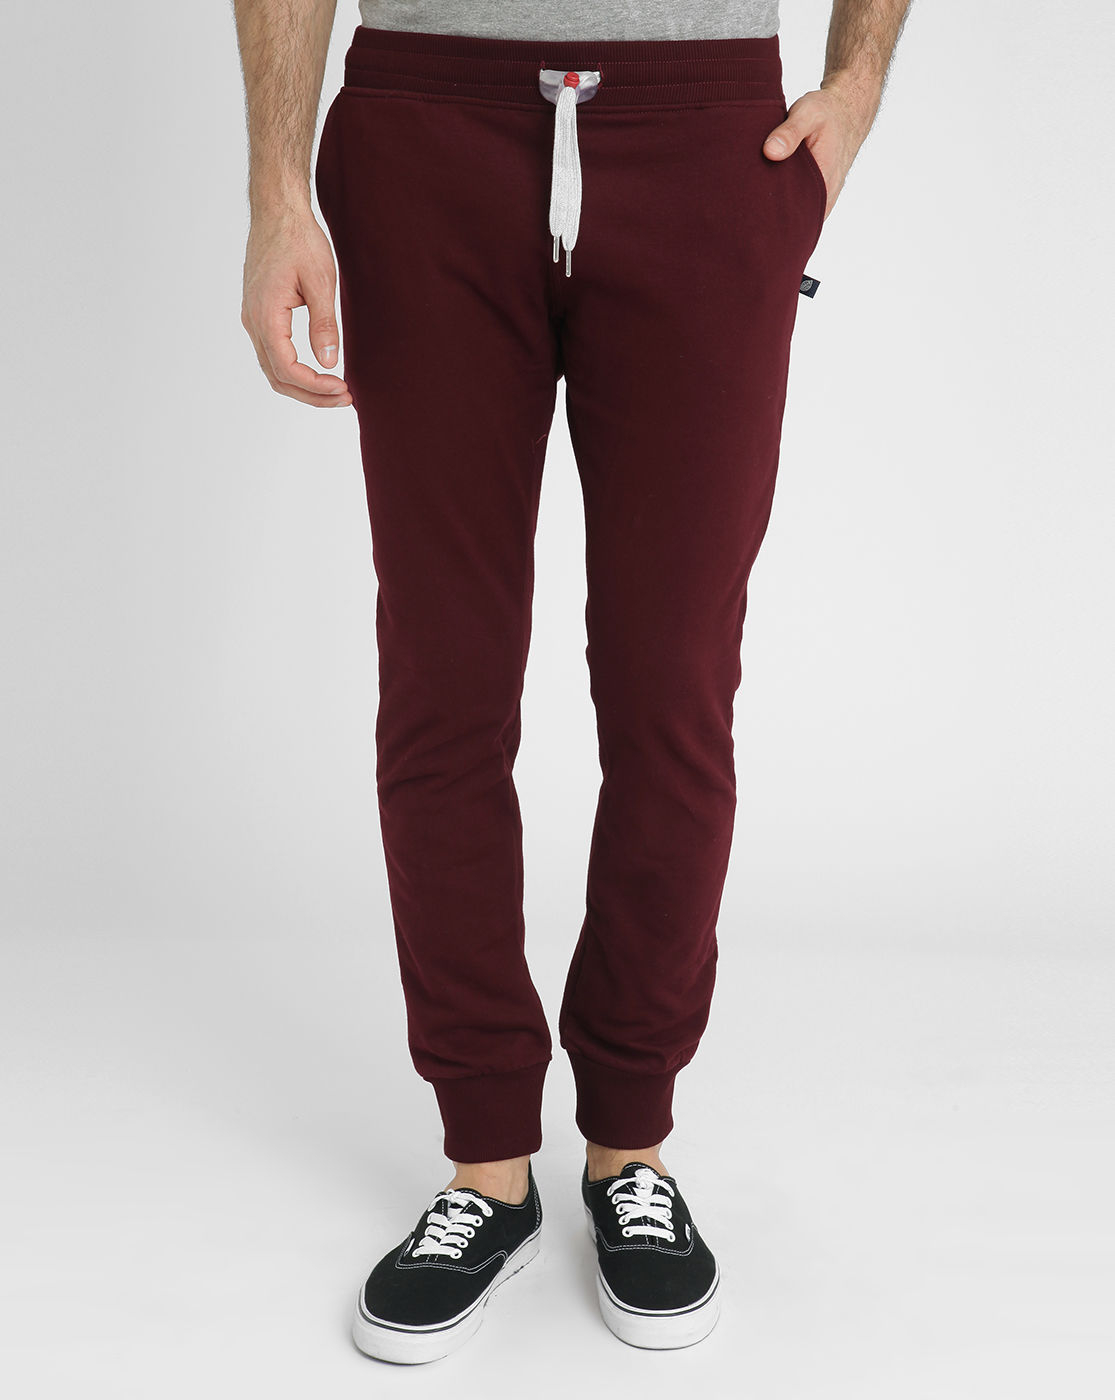 Brilliant Kolor Kolor Womens Corduroy Pants In Purple Burgundy  Lyst